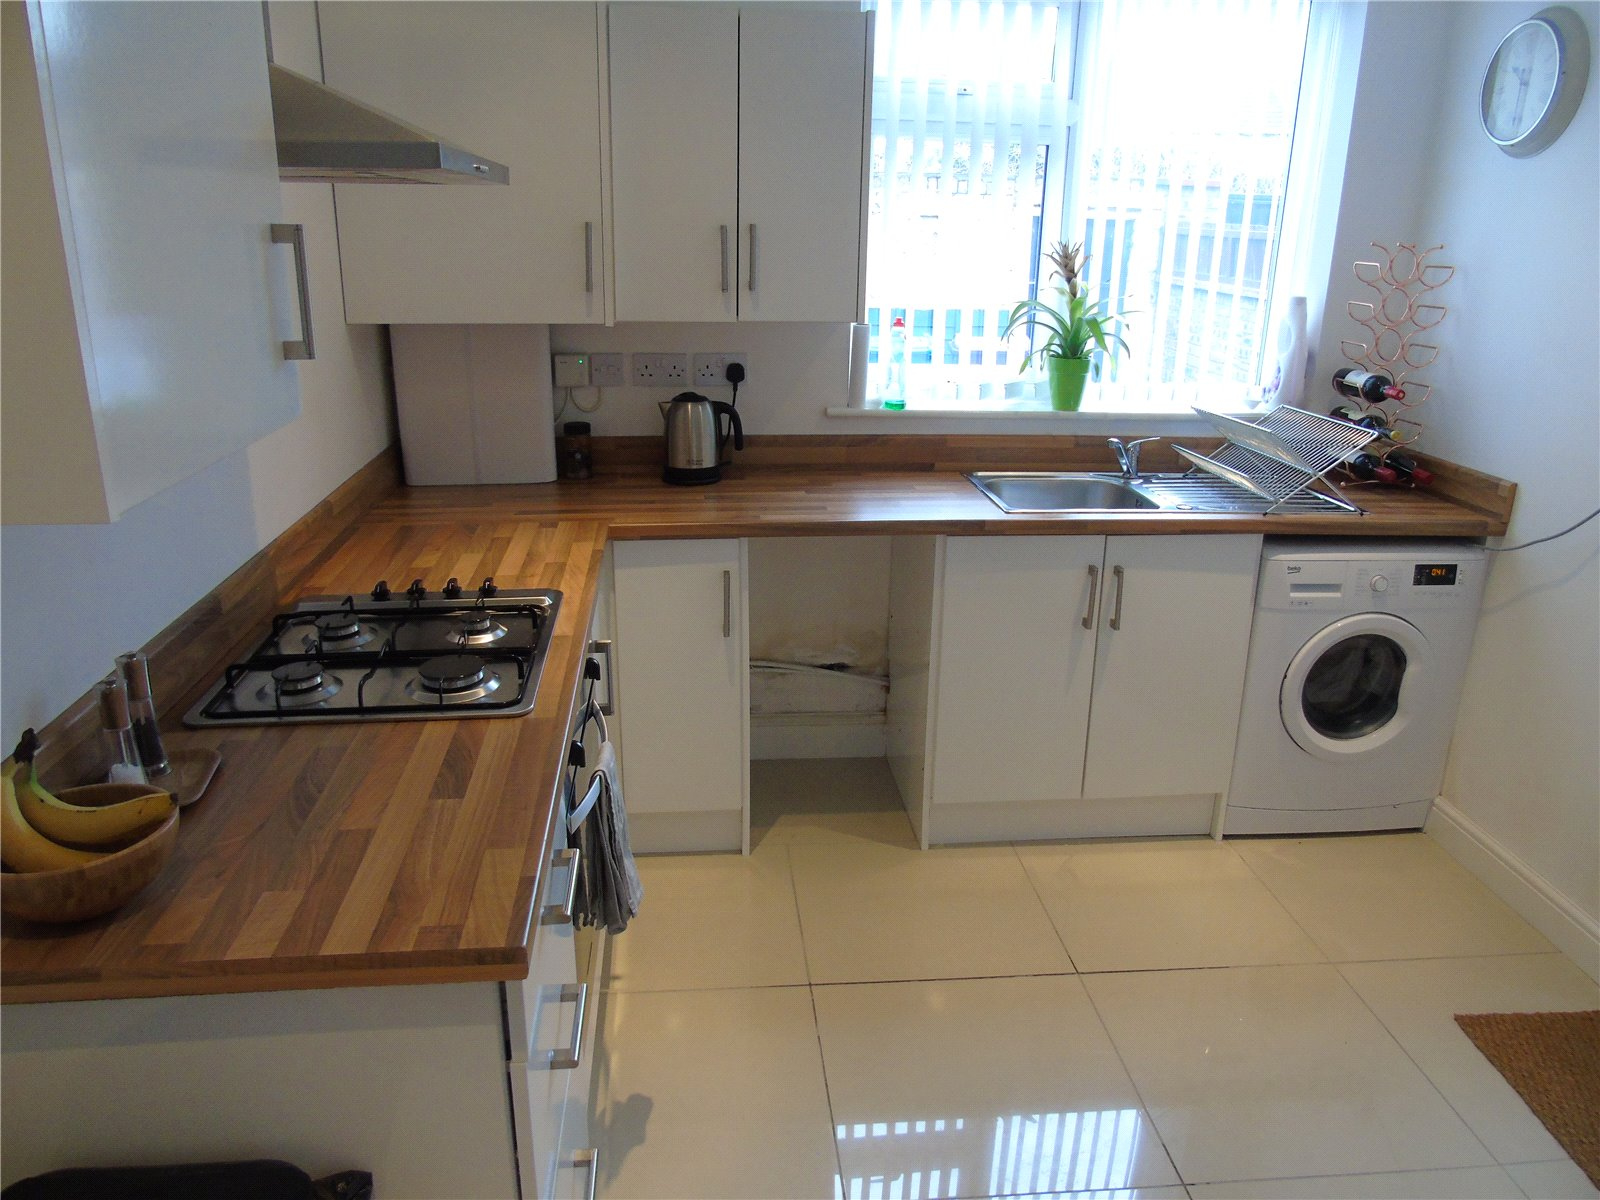 Whitegates Walton Vale 3 Bedroom House For Sale In